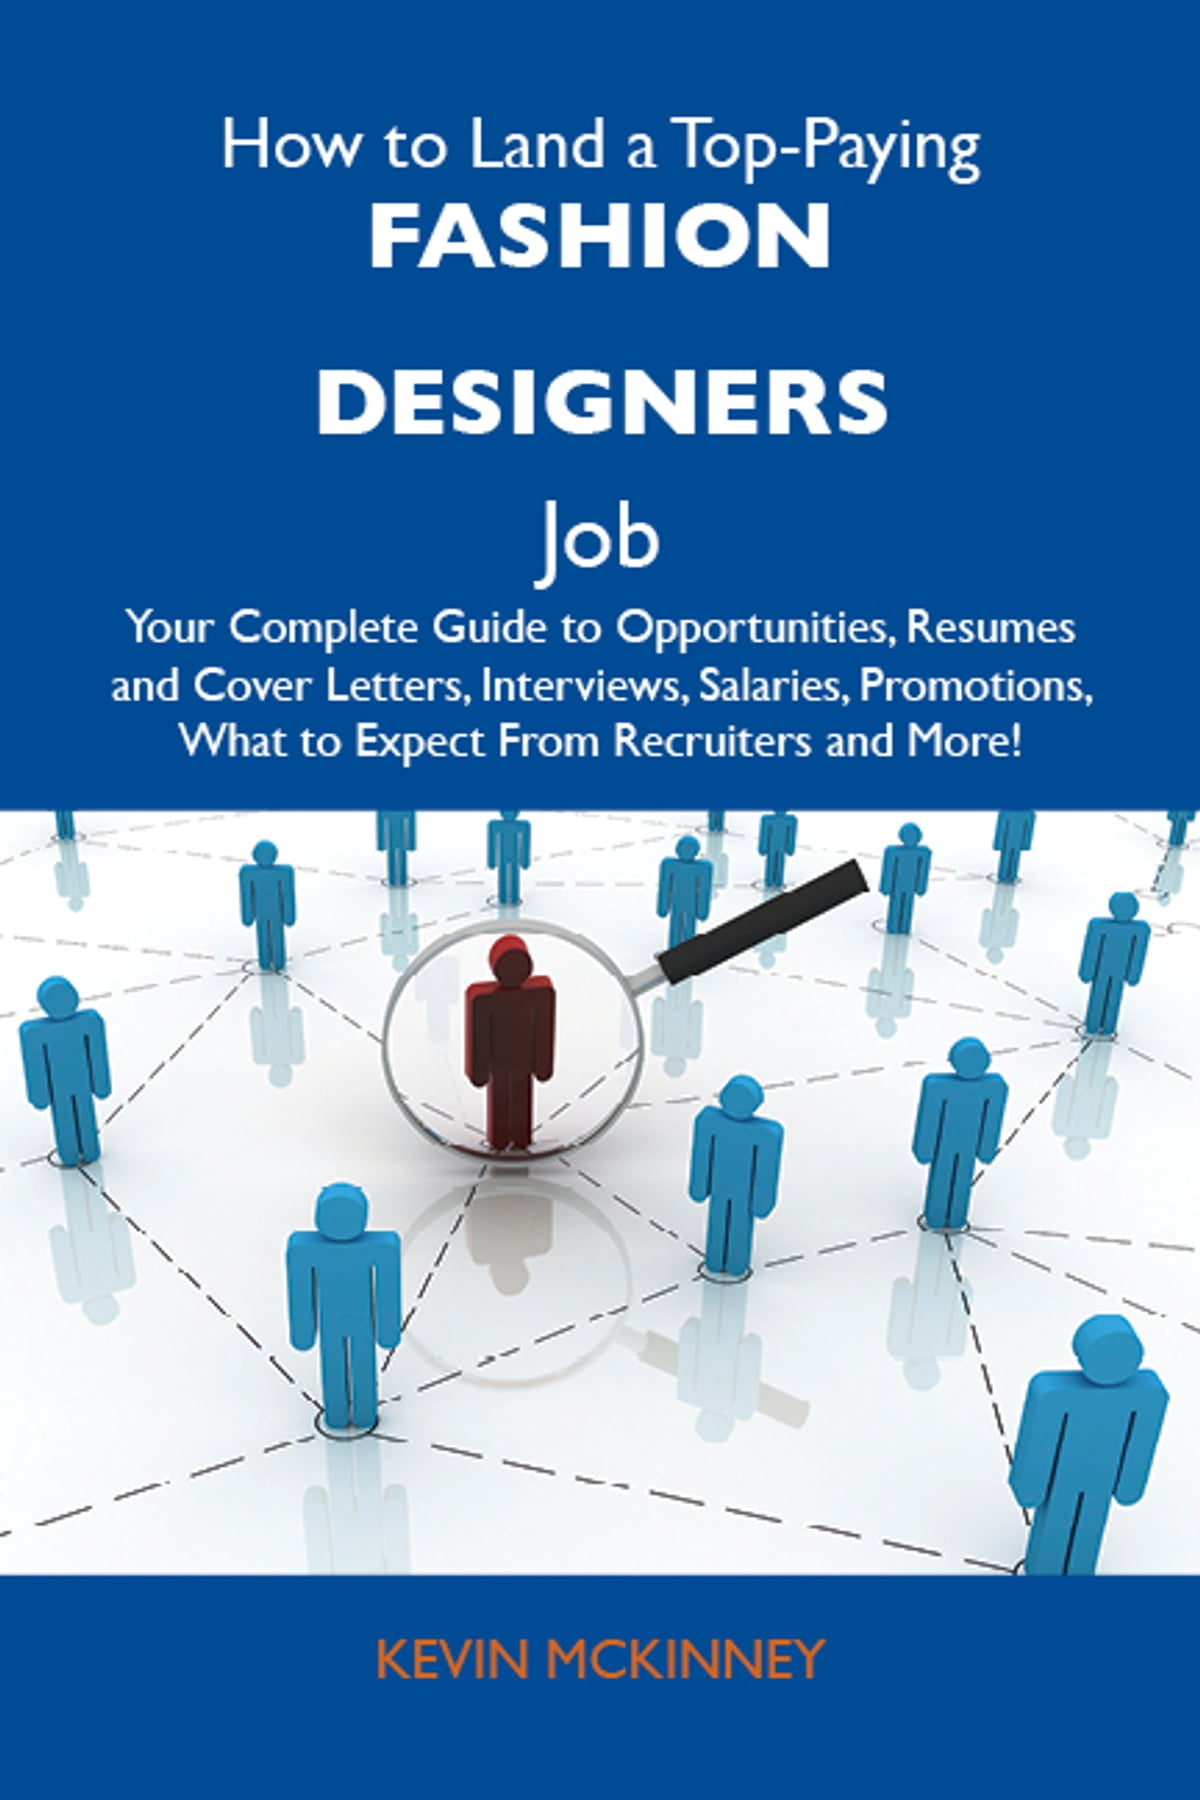 How To Land A Top Paying Fashion Designers Job Your Complete Guide To Opportunities Resumes And Cover Letters Interviews Salaries Promotions What To Expect From Recruiters And More Ebook By Mckinney Kevin